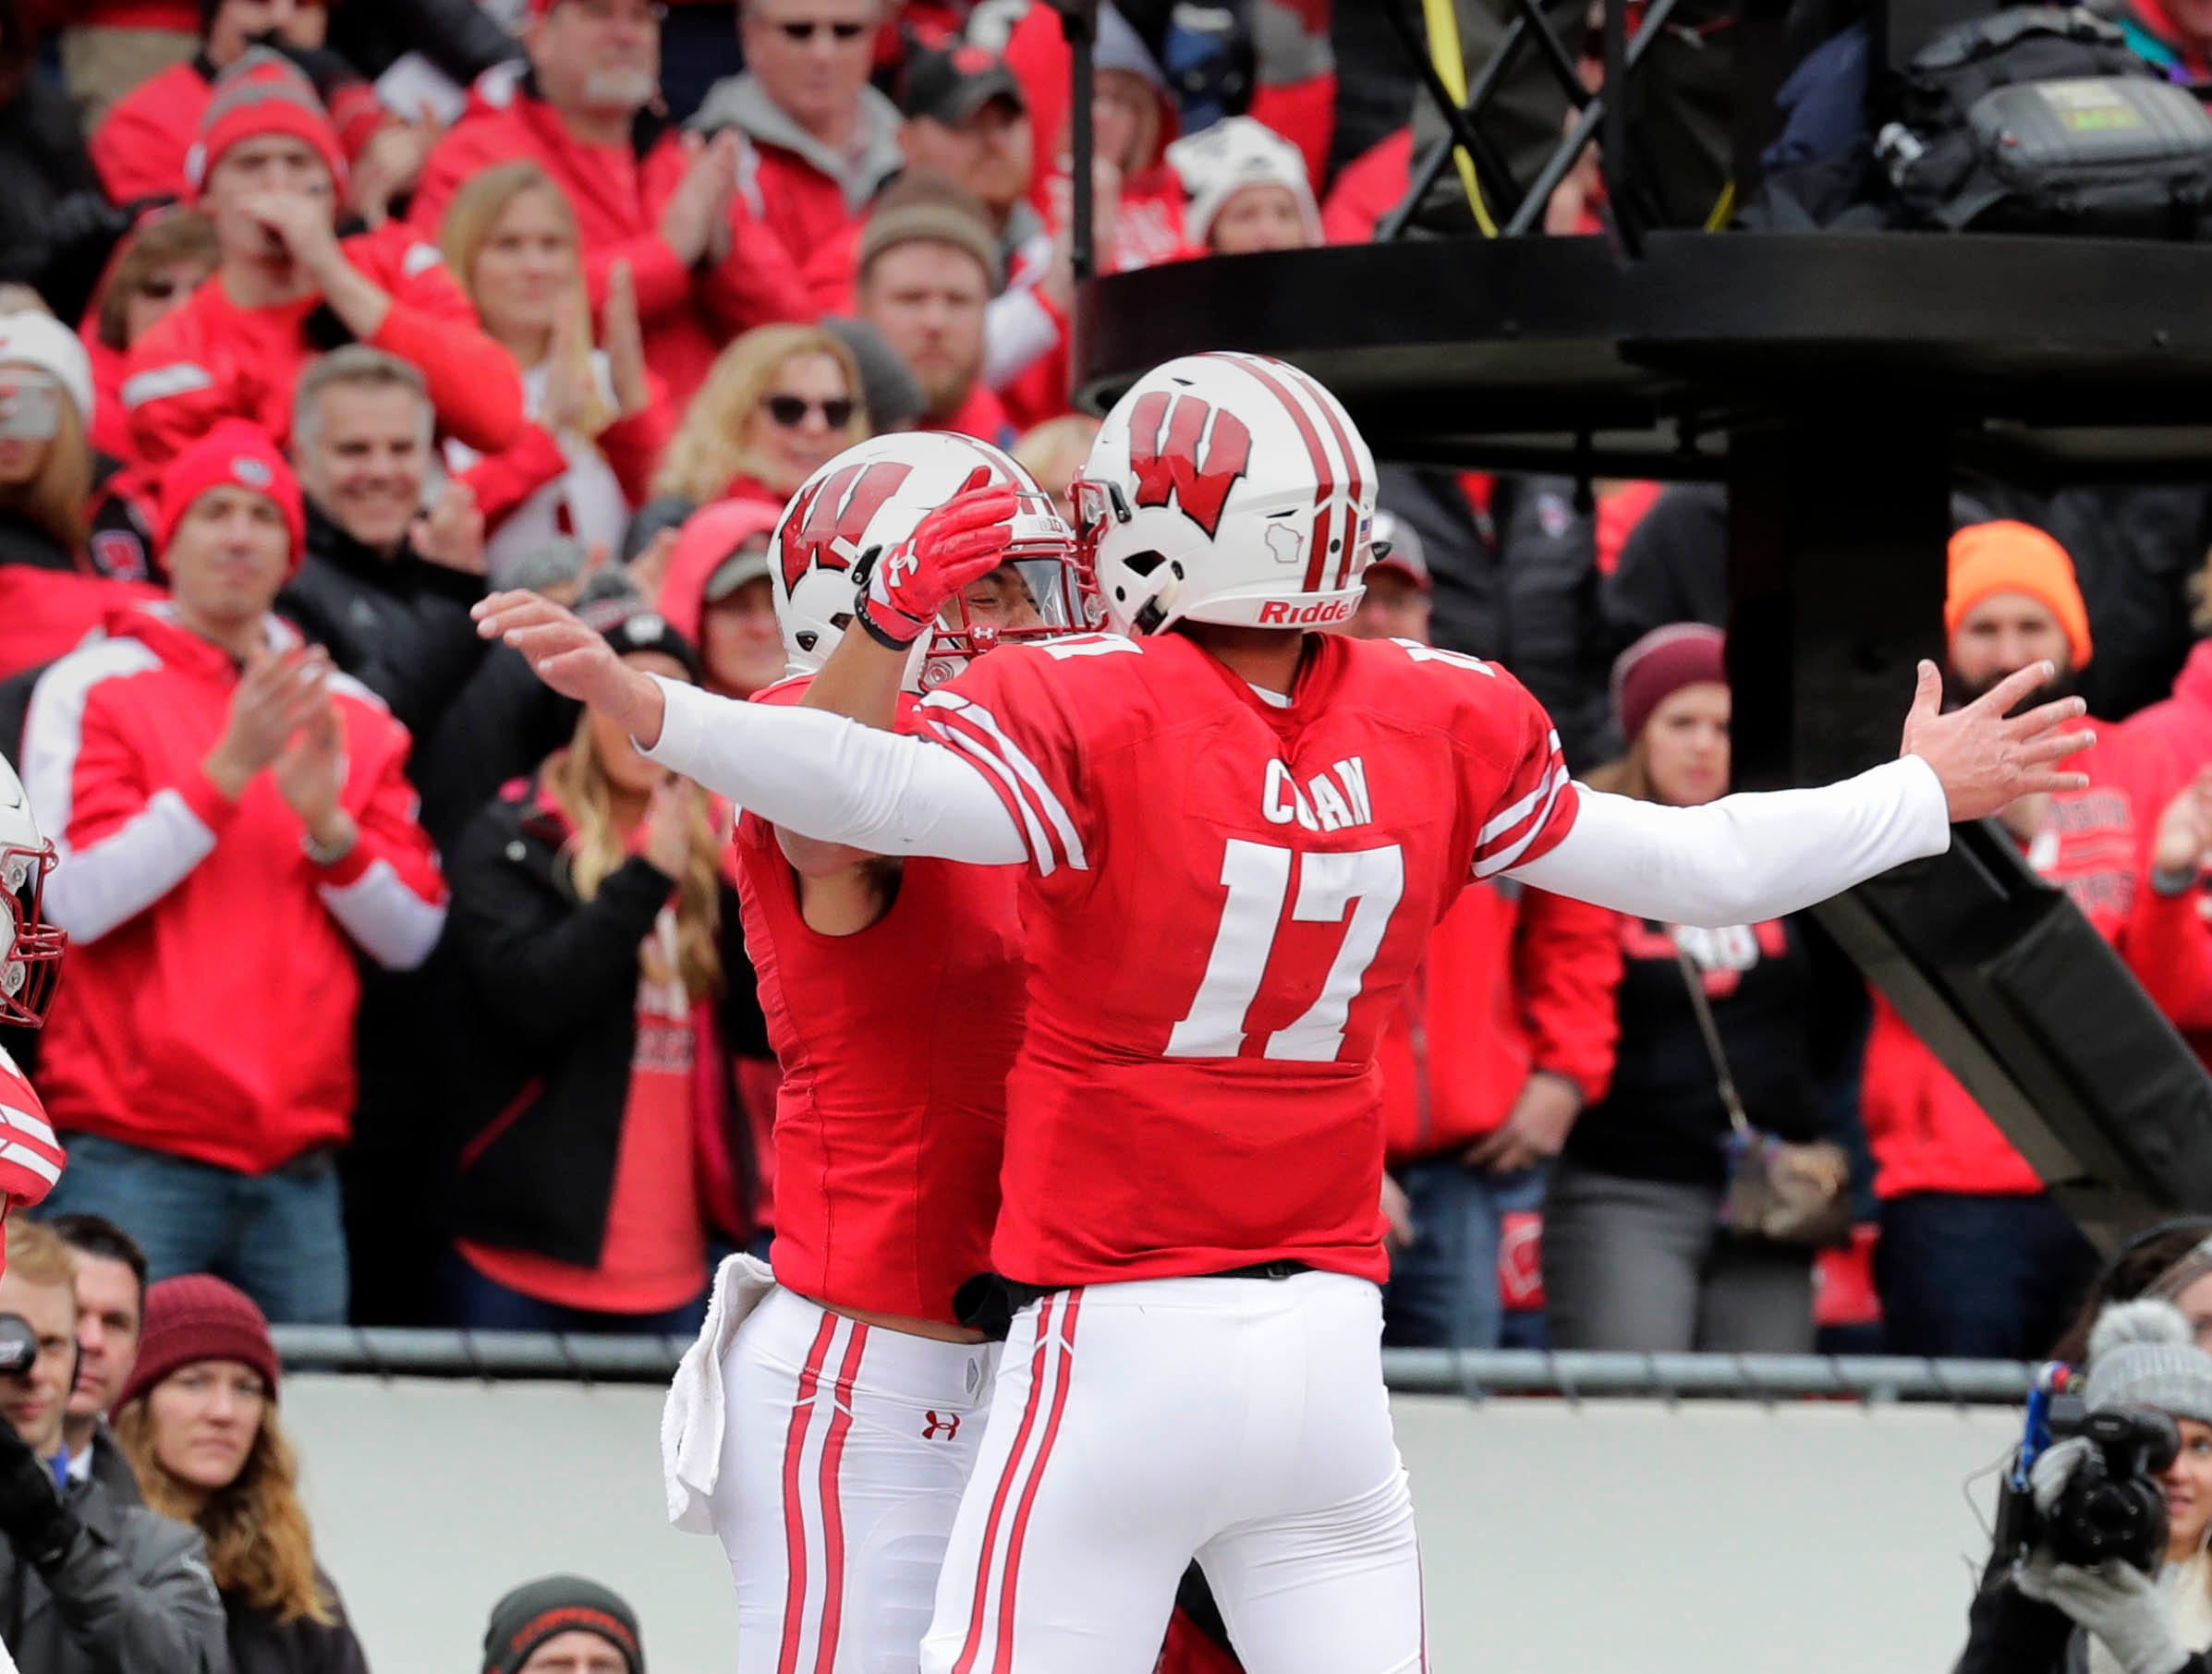 Badgers wide receiver Danny Davis III (left) and quarterback Jack Coan celebrate after the two hooked up for an 11-yard touchdown reception during the fourth quarter on Saturday.